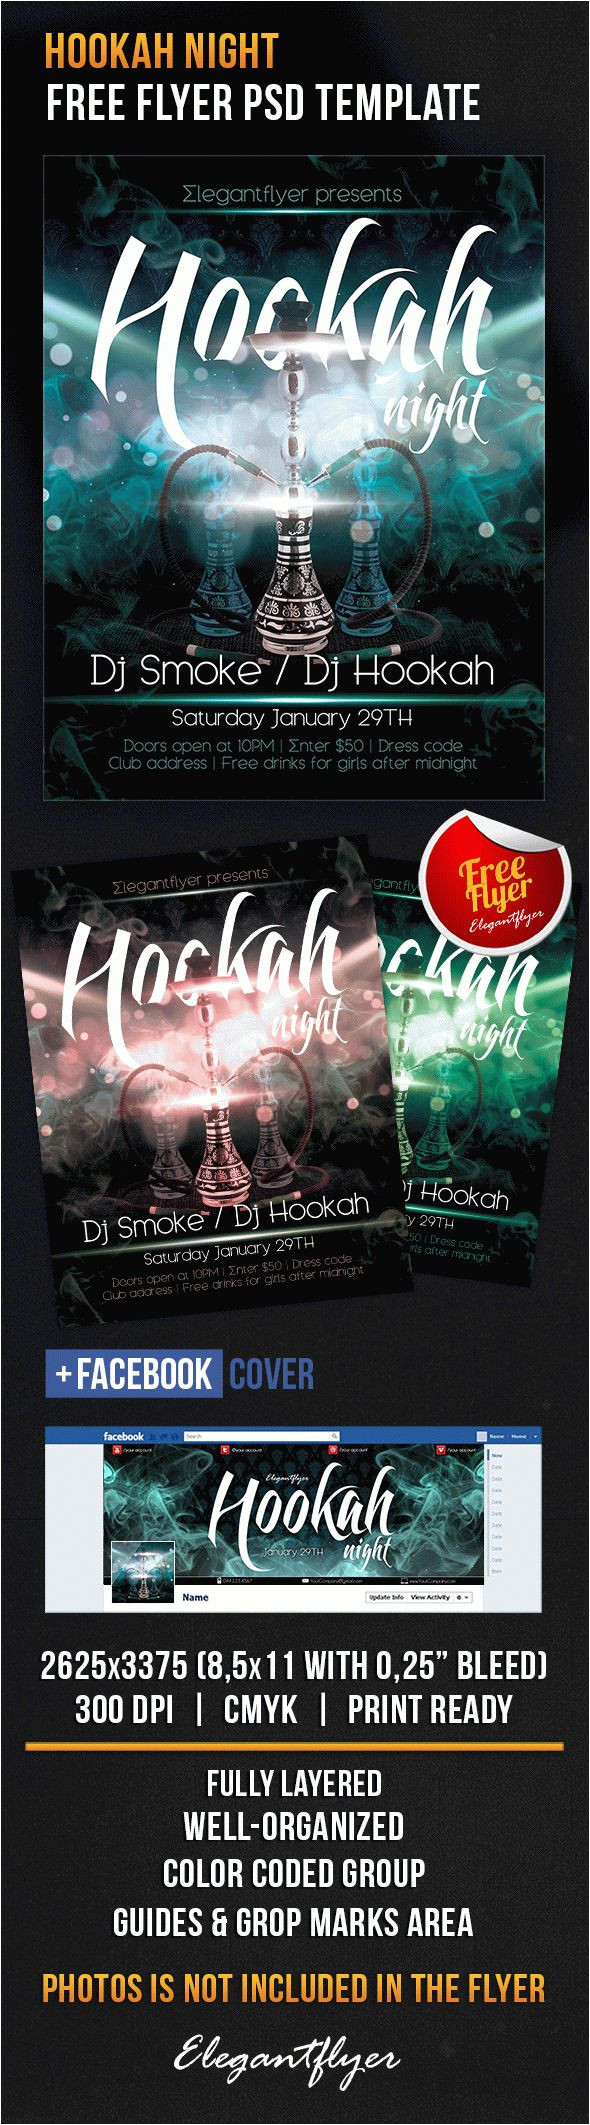 hookah night free flyer psd template facebook cover 2